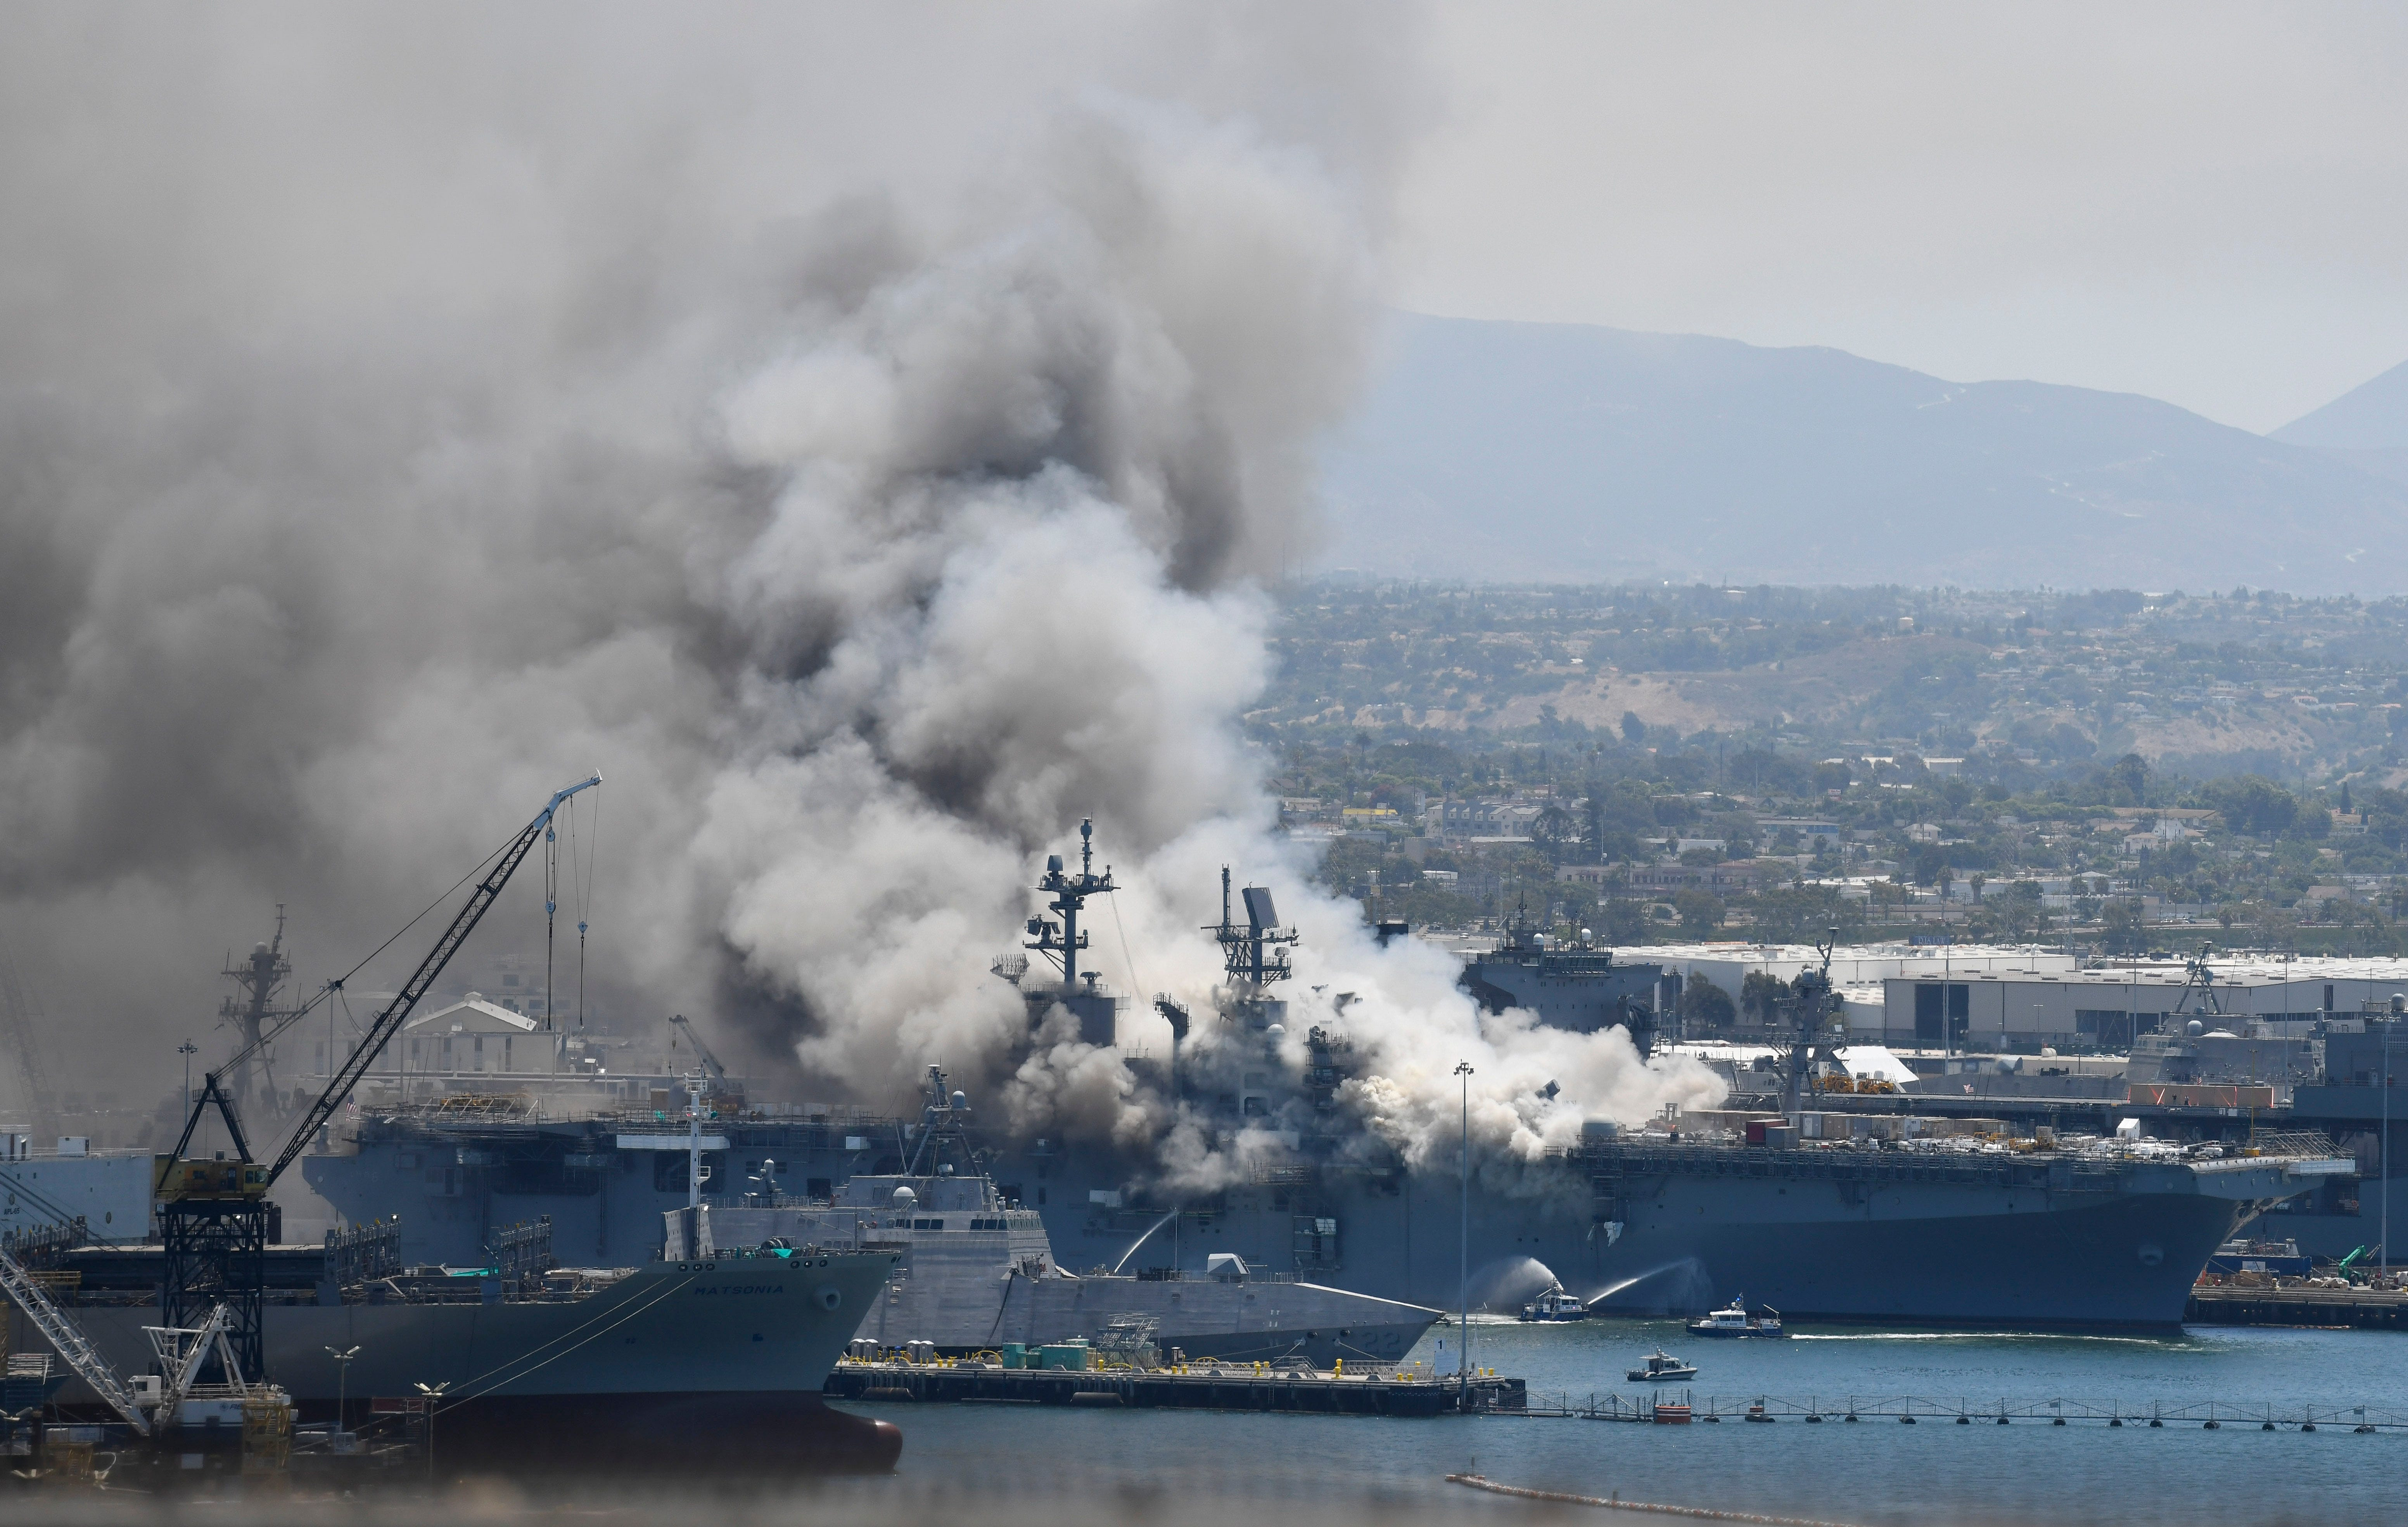 US Navy charges 20-year-old sailor with setting fire that destroyed USS Bonhomme Richard last July, reports say